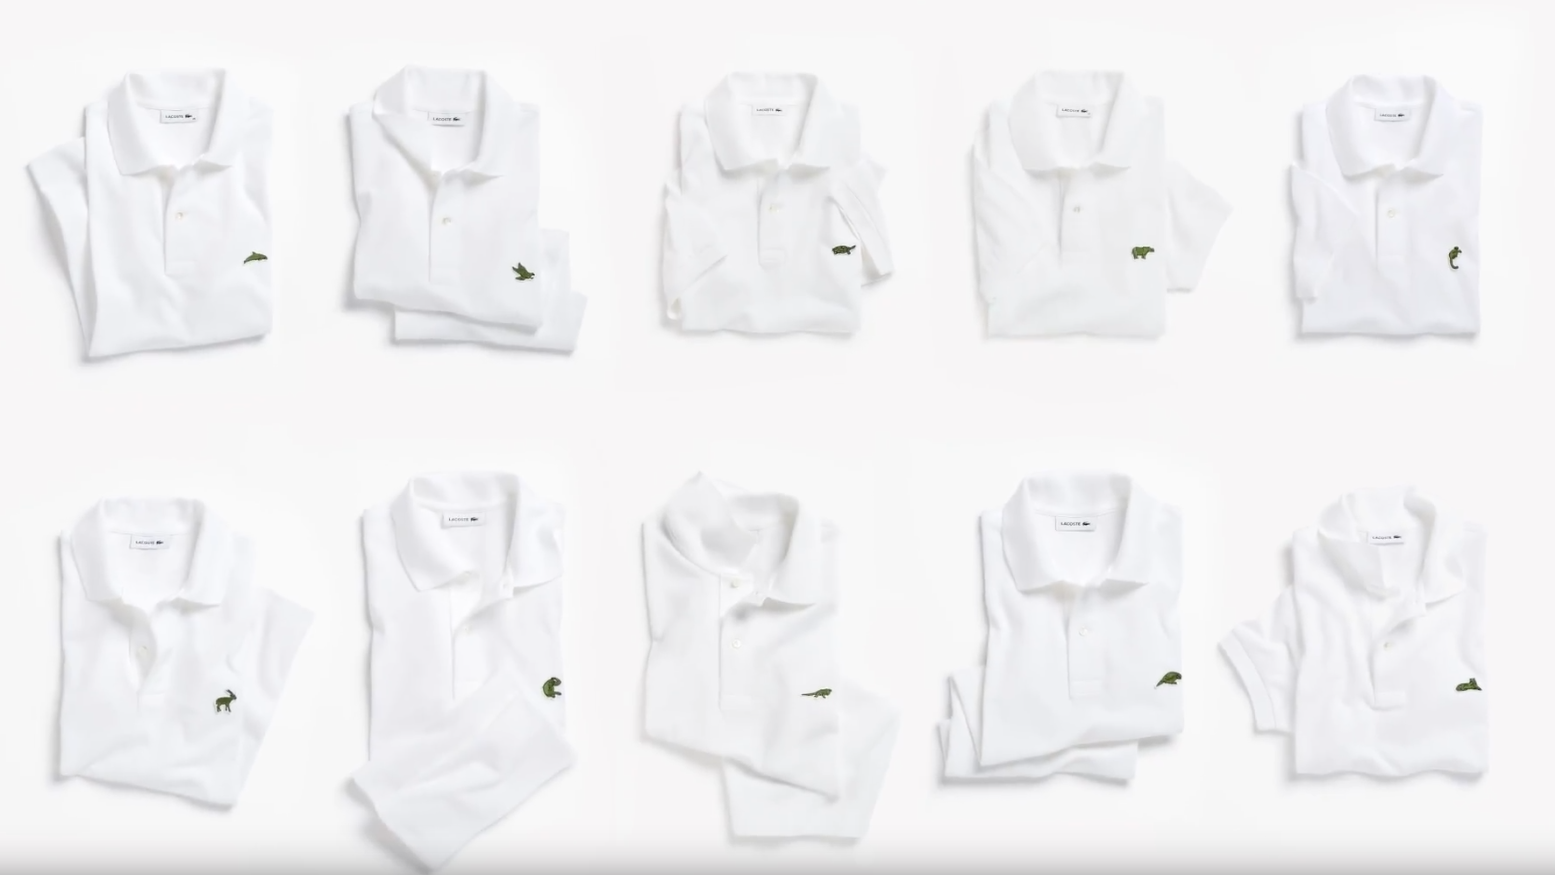 eebe4bc67d4b Lacoste drops its iconic crocodile to bring awareness to 10 endangered  animals   Boing Boing